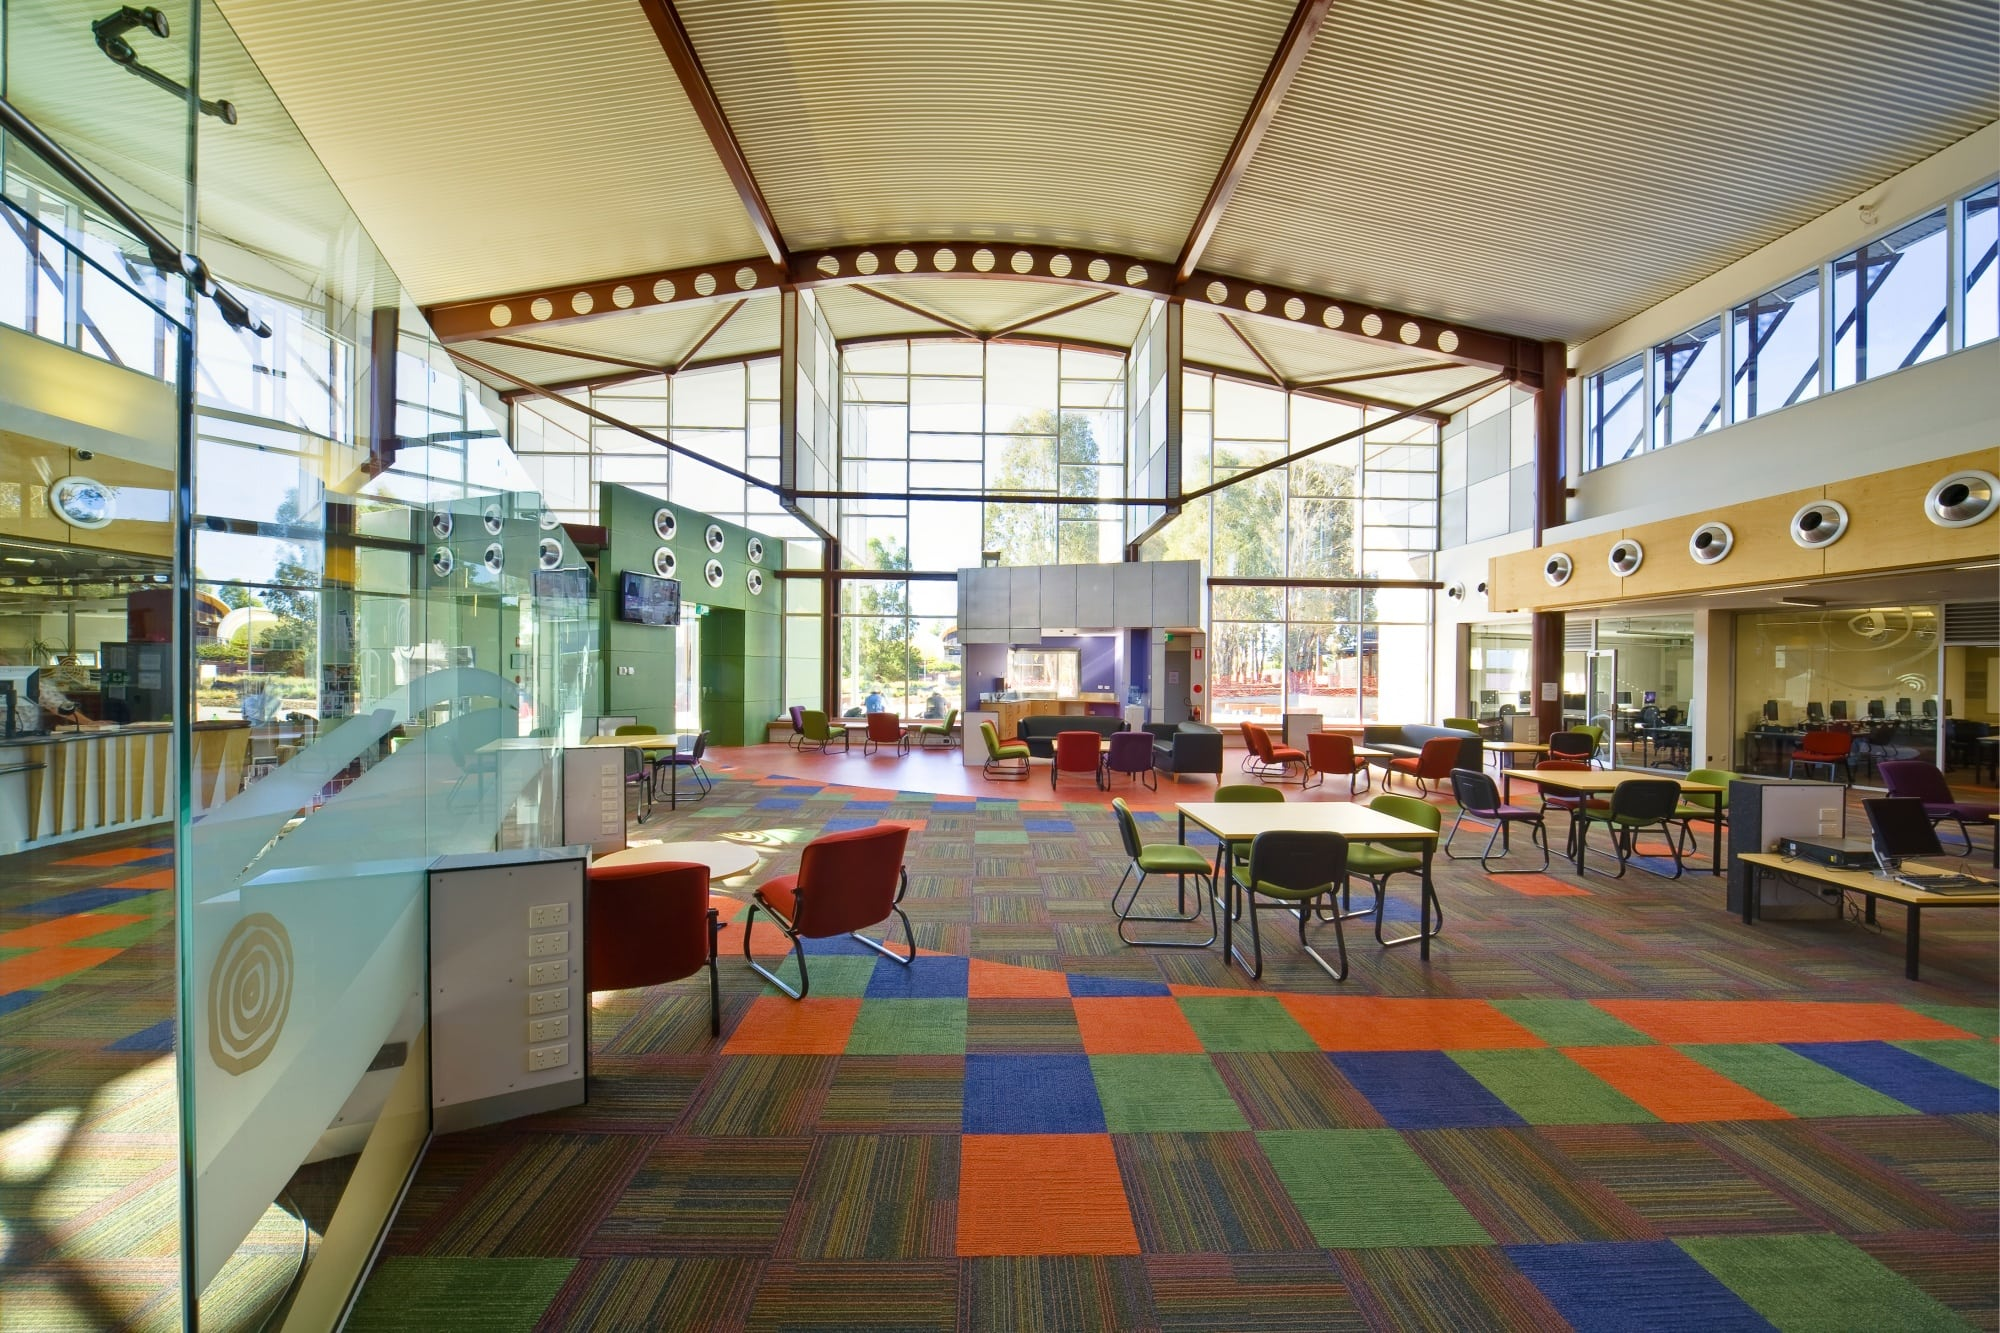 Charles Sturt University - Thurgoona Campus 'Learning Commons Building' - Interal Glazing